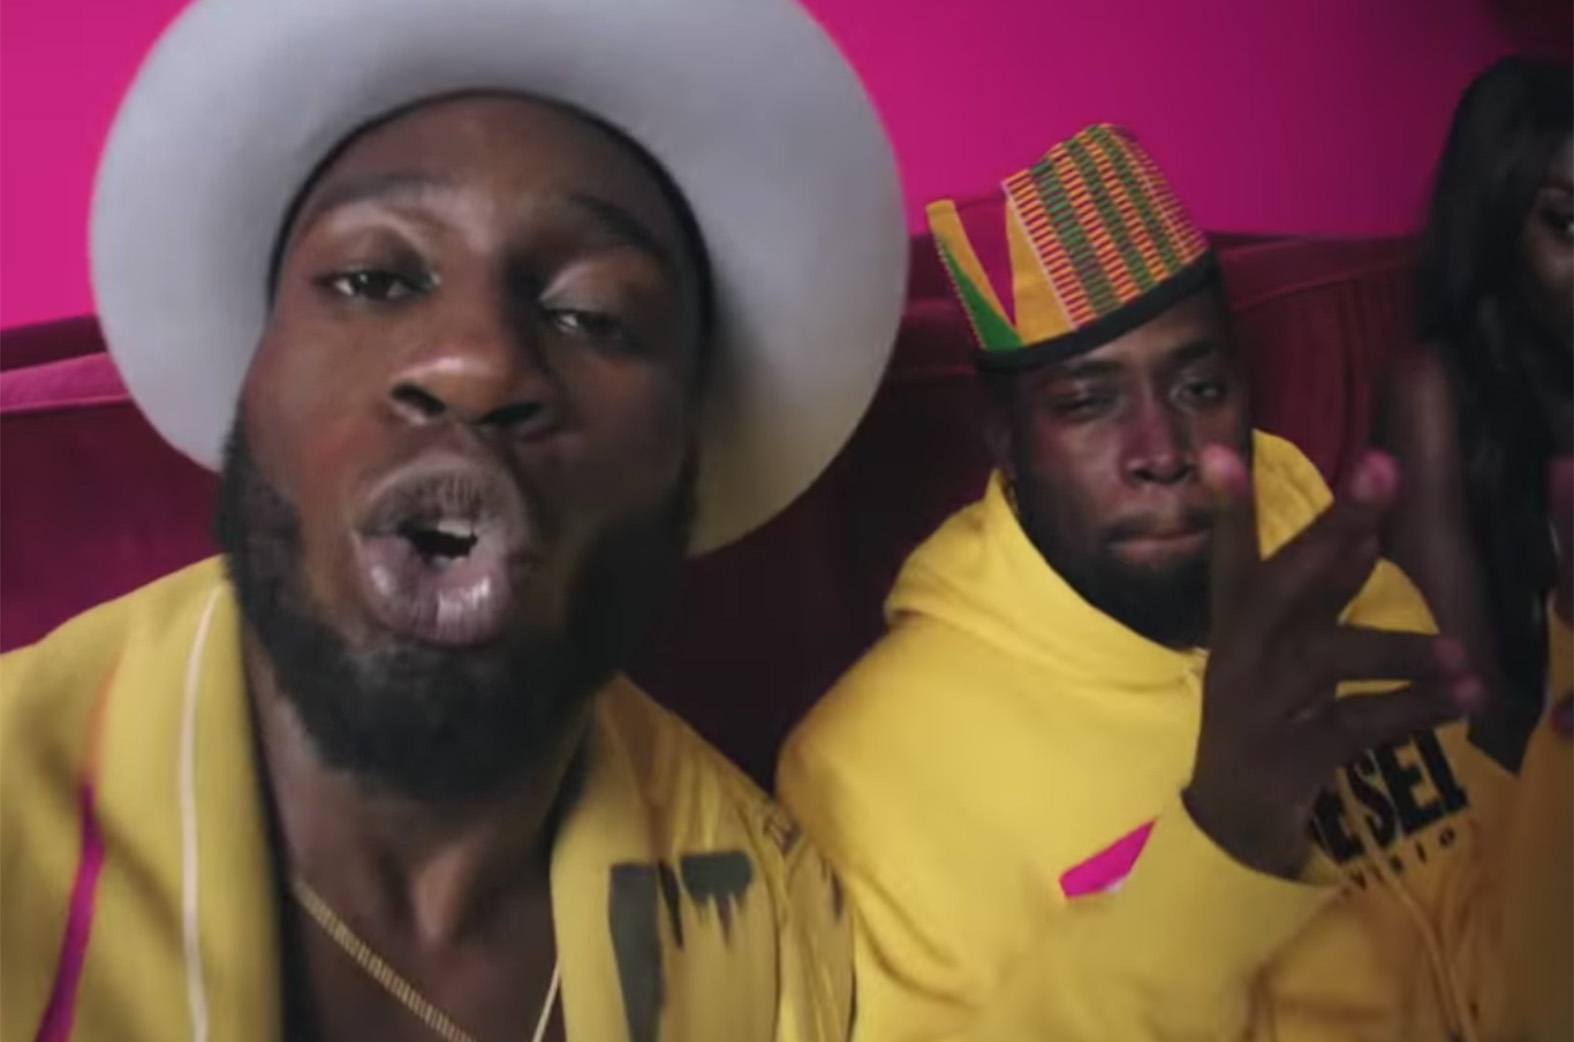 Video: Normal by Juls feat. Kojey Radical